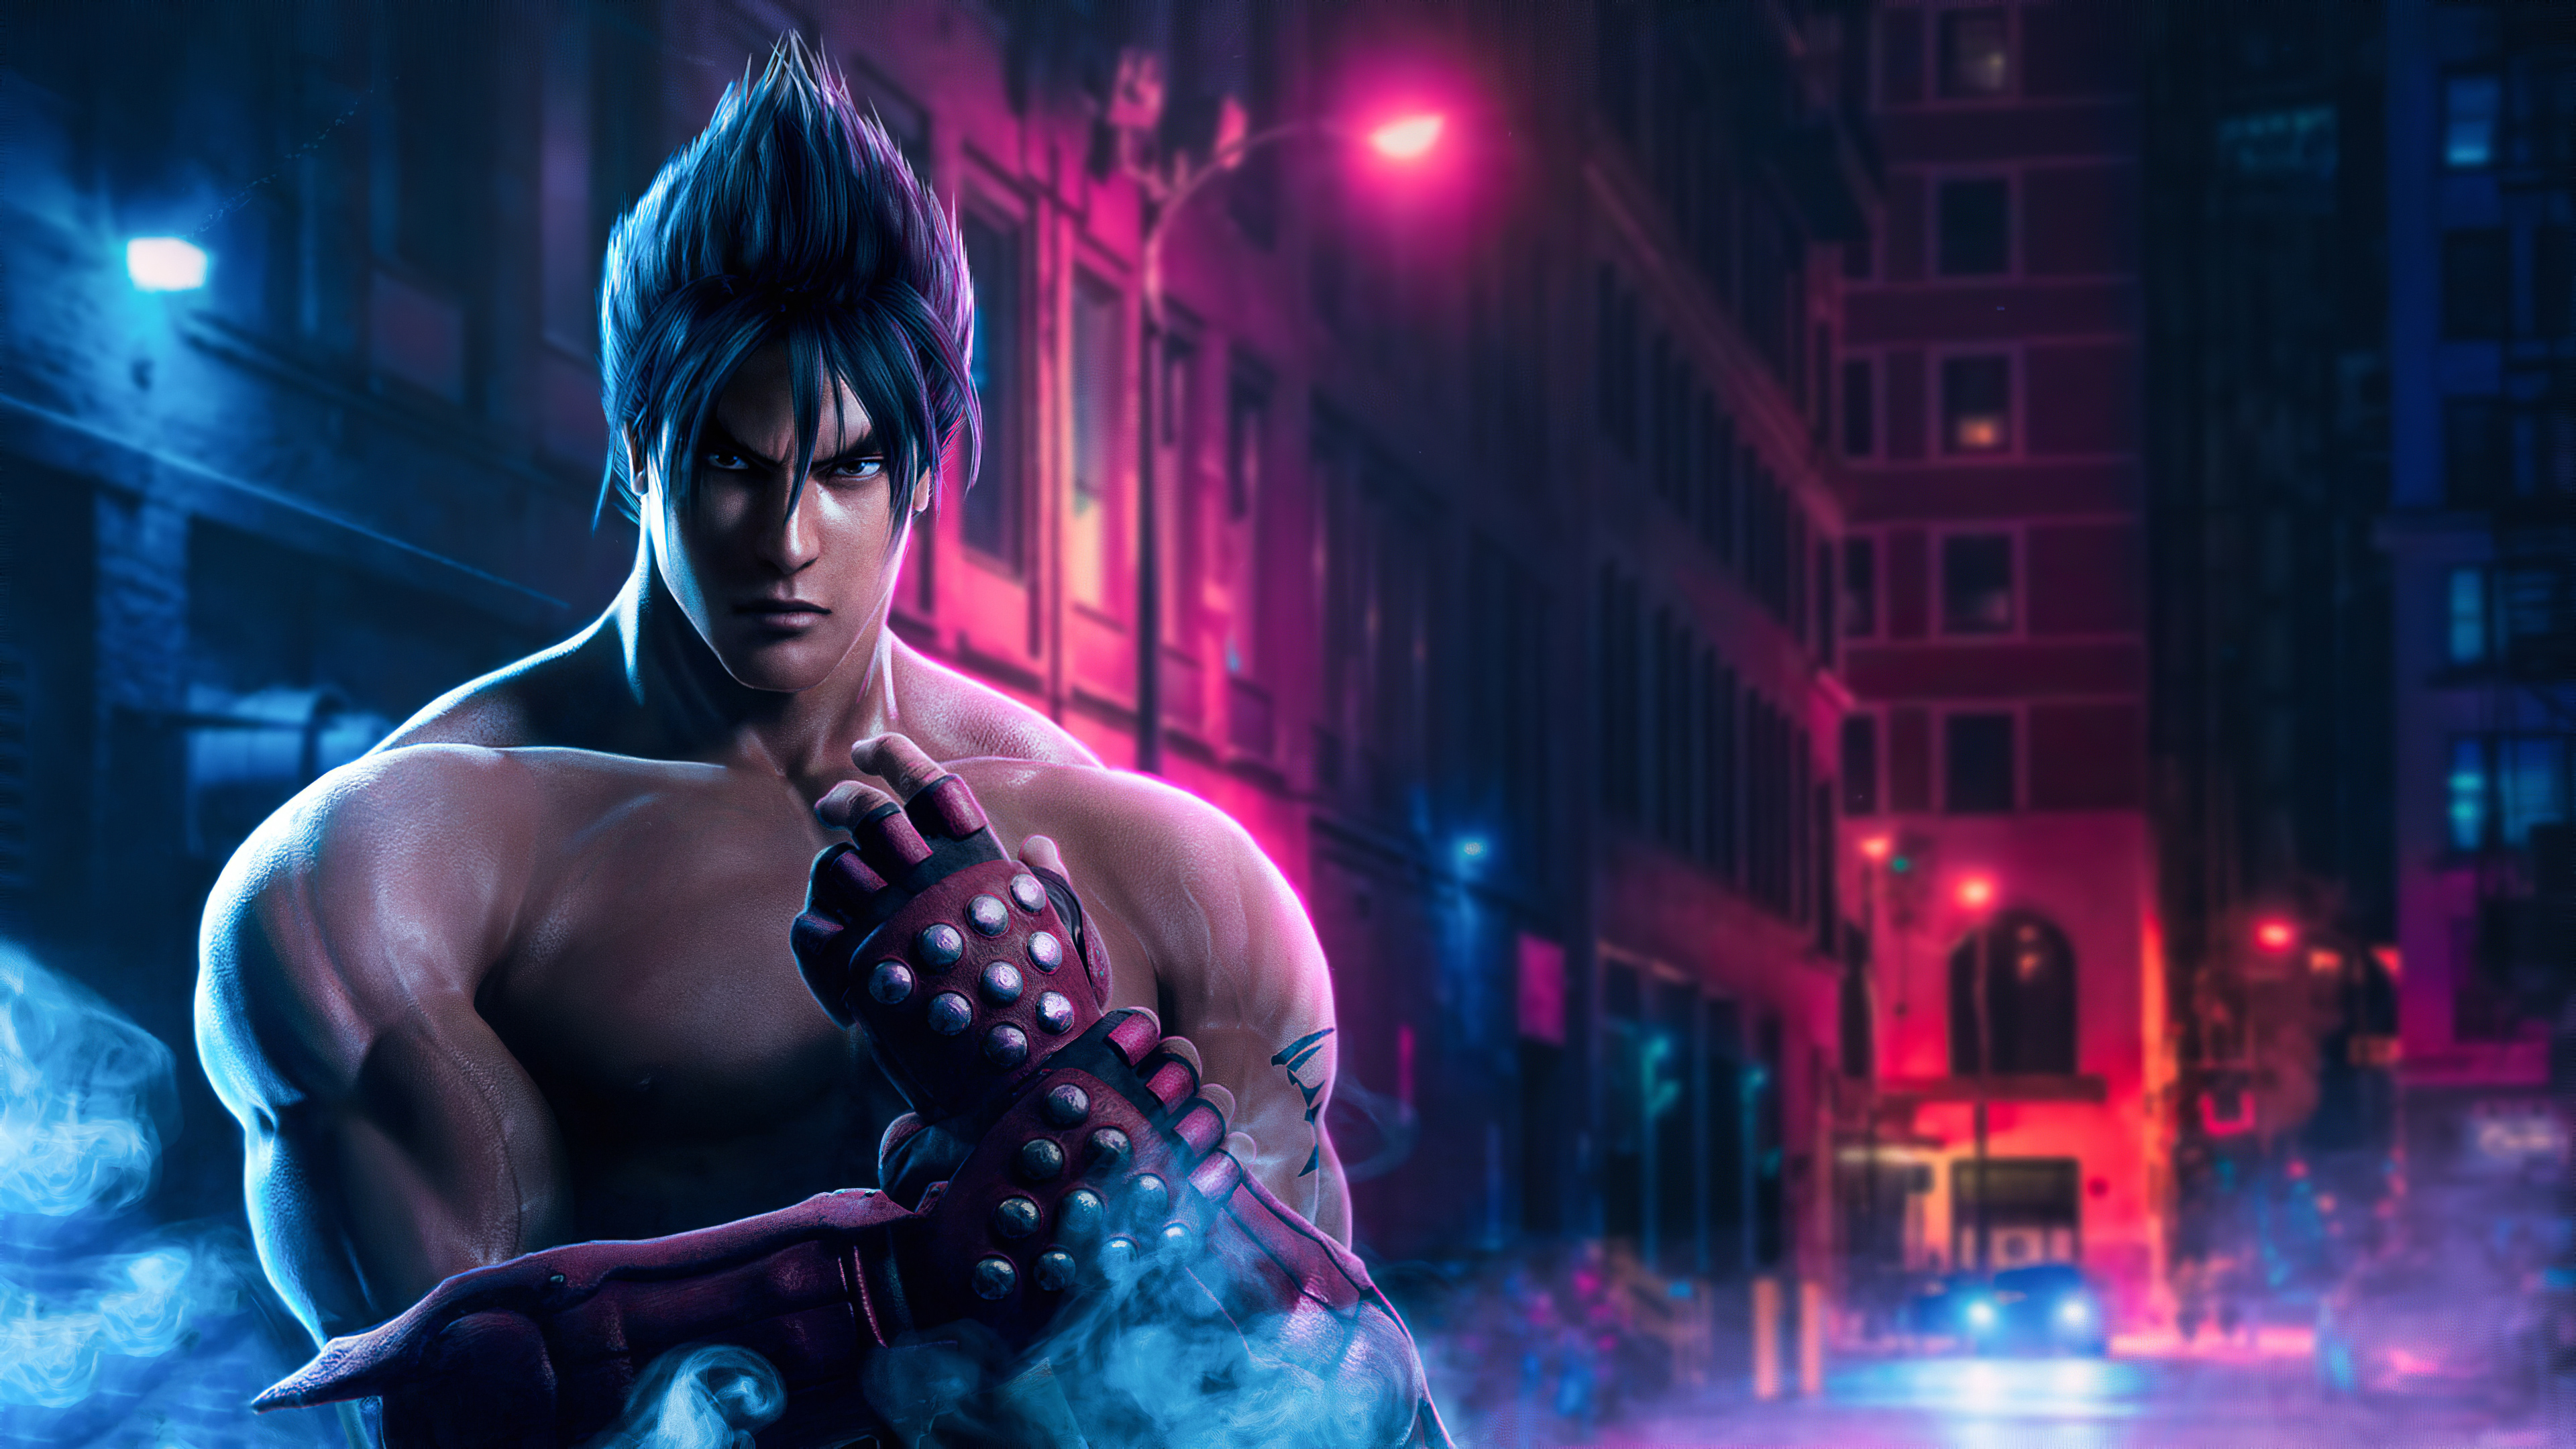 tekken 7 jin kazama 1578854827 - Tekken 7 Jin Kazama - Tekken 7 wallpaper 4k, Tekken 7 game wallpaper 4k, Jin Kazama wallpaper 4k, Jin Kazama 4k wallpaper